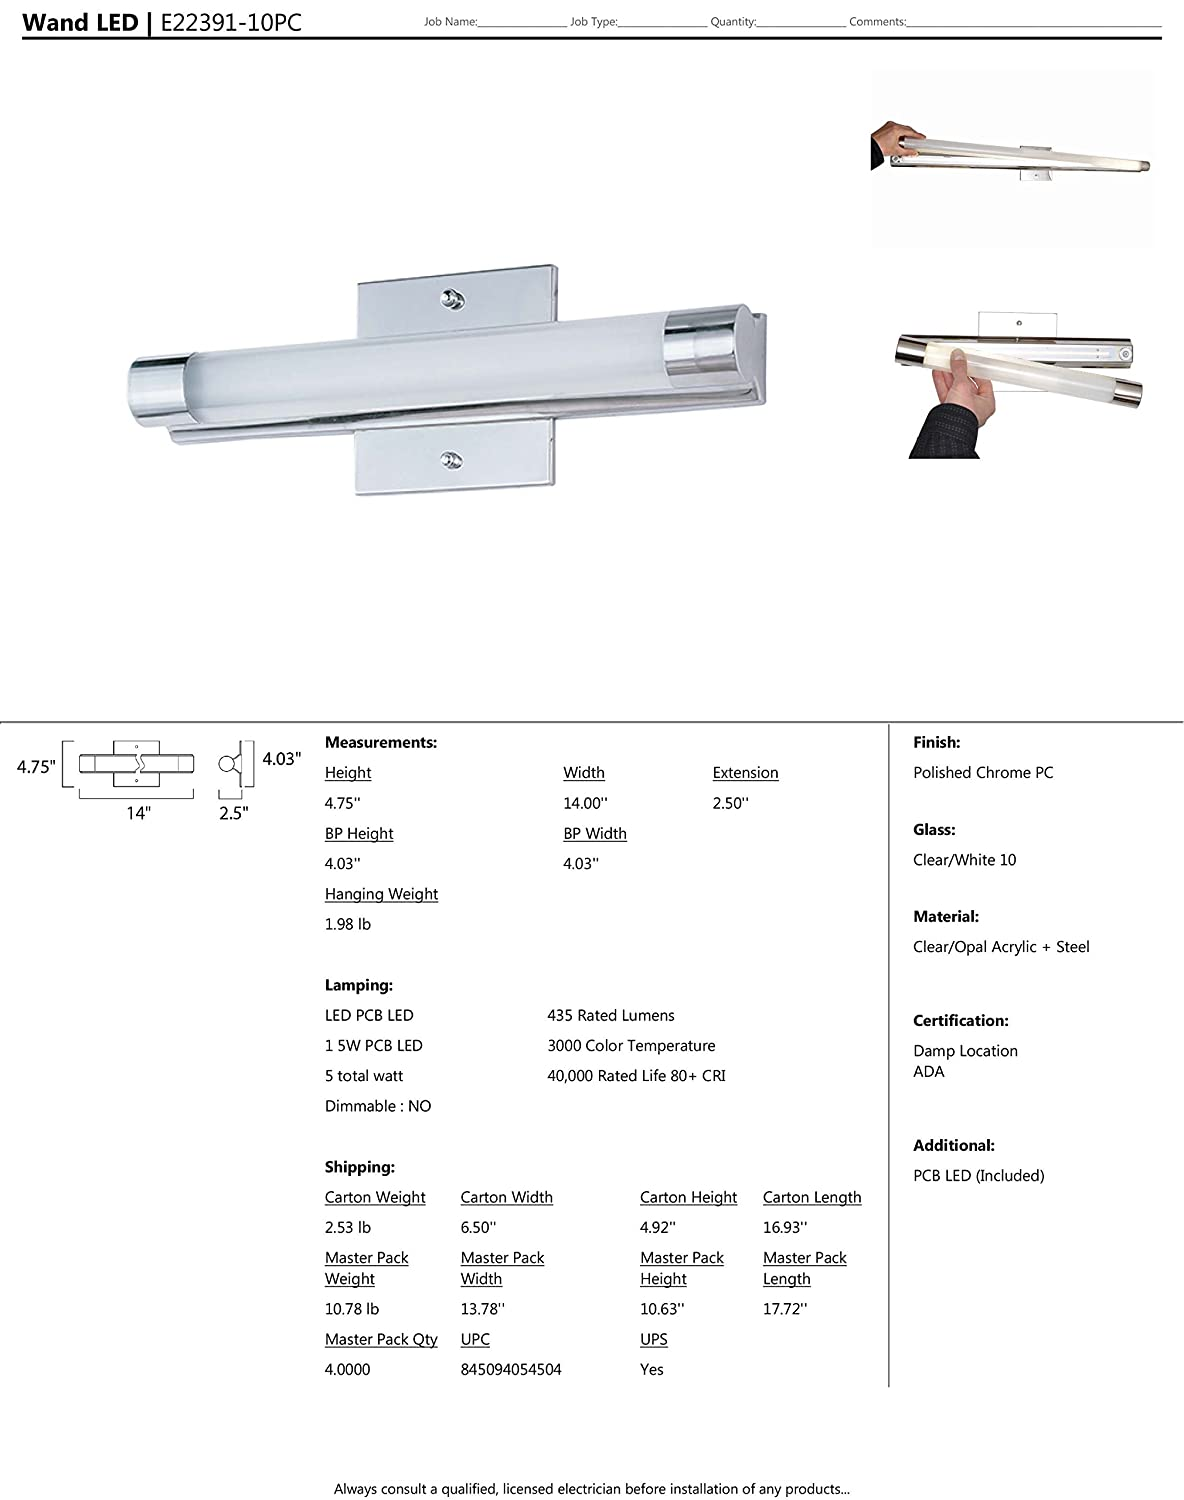 PCB LED Bulb Polished Chrome Finish Clear//White Glass 68W Max. 330 Rated Lumens Wet Safety Rated 3000K Color Temp. Shade Material ET2 E22391-10PC Wand LED Bath Vanity